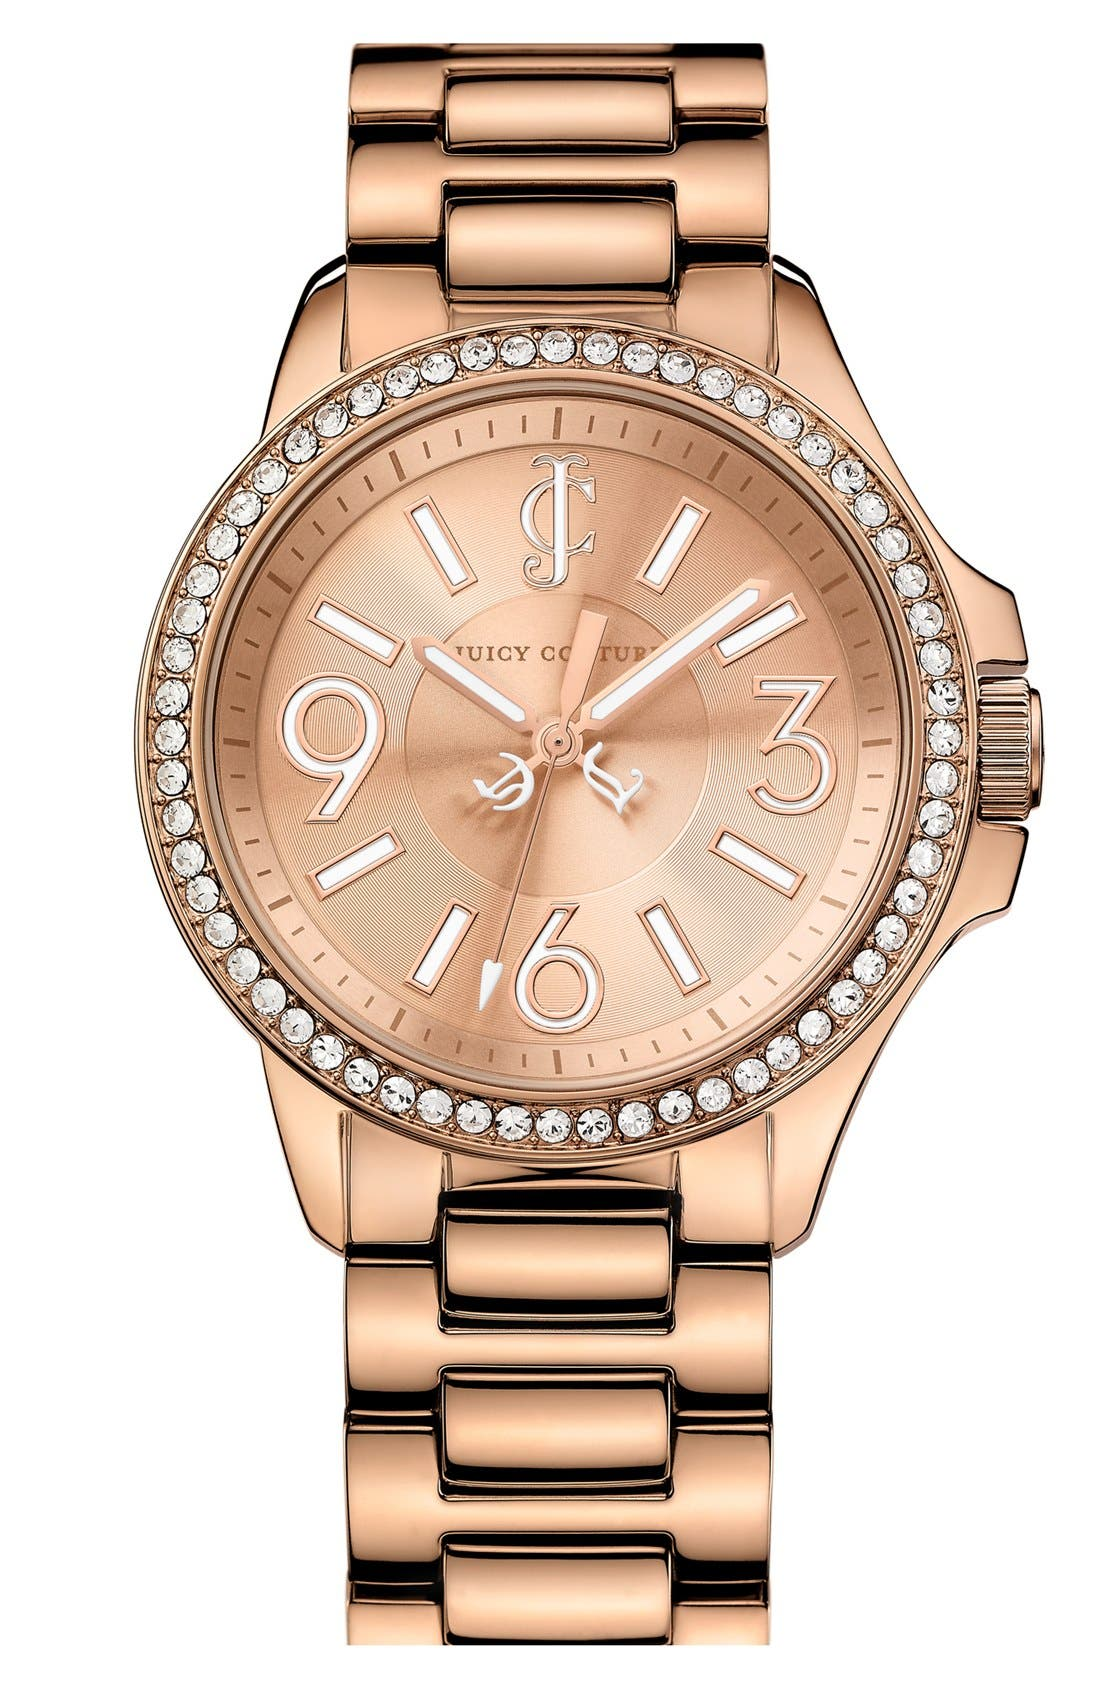 Main Image - Juicy Couture 'Jetsetter' Round Bracelet Watch, 38mm